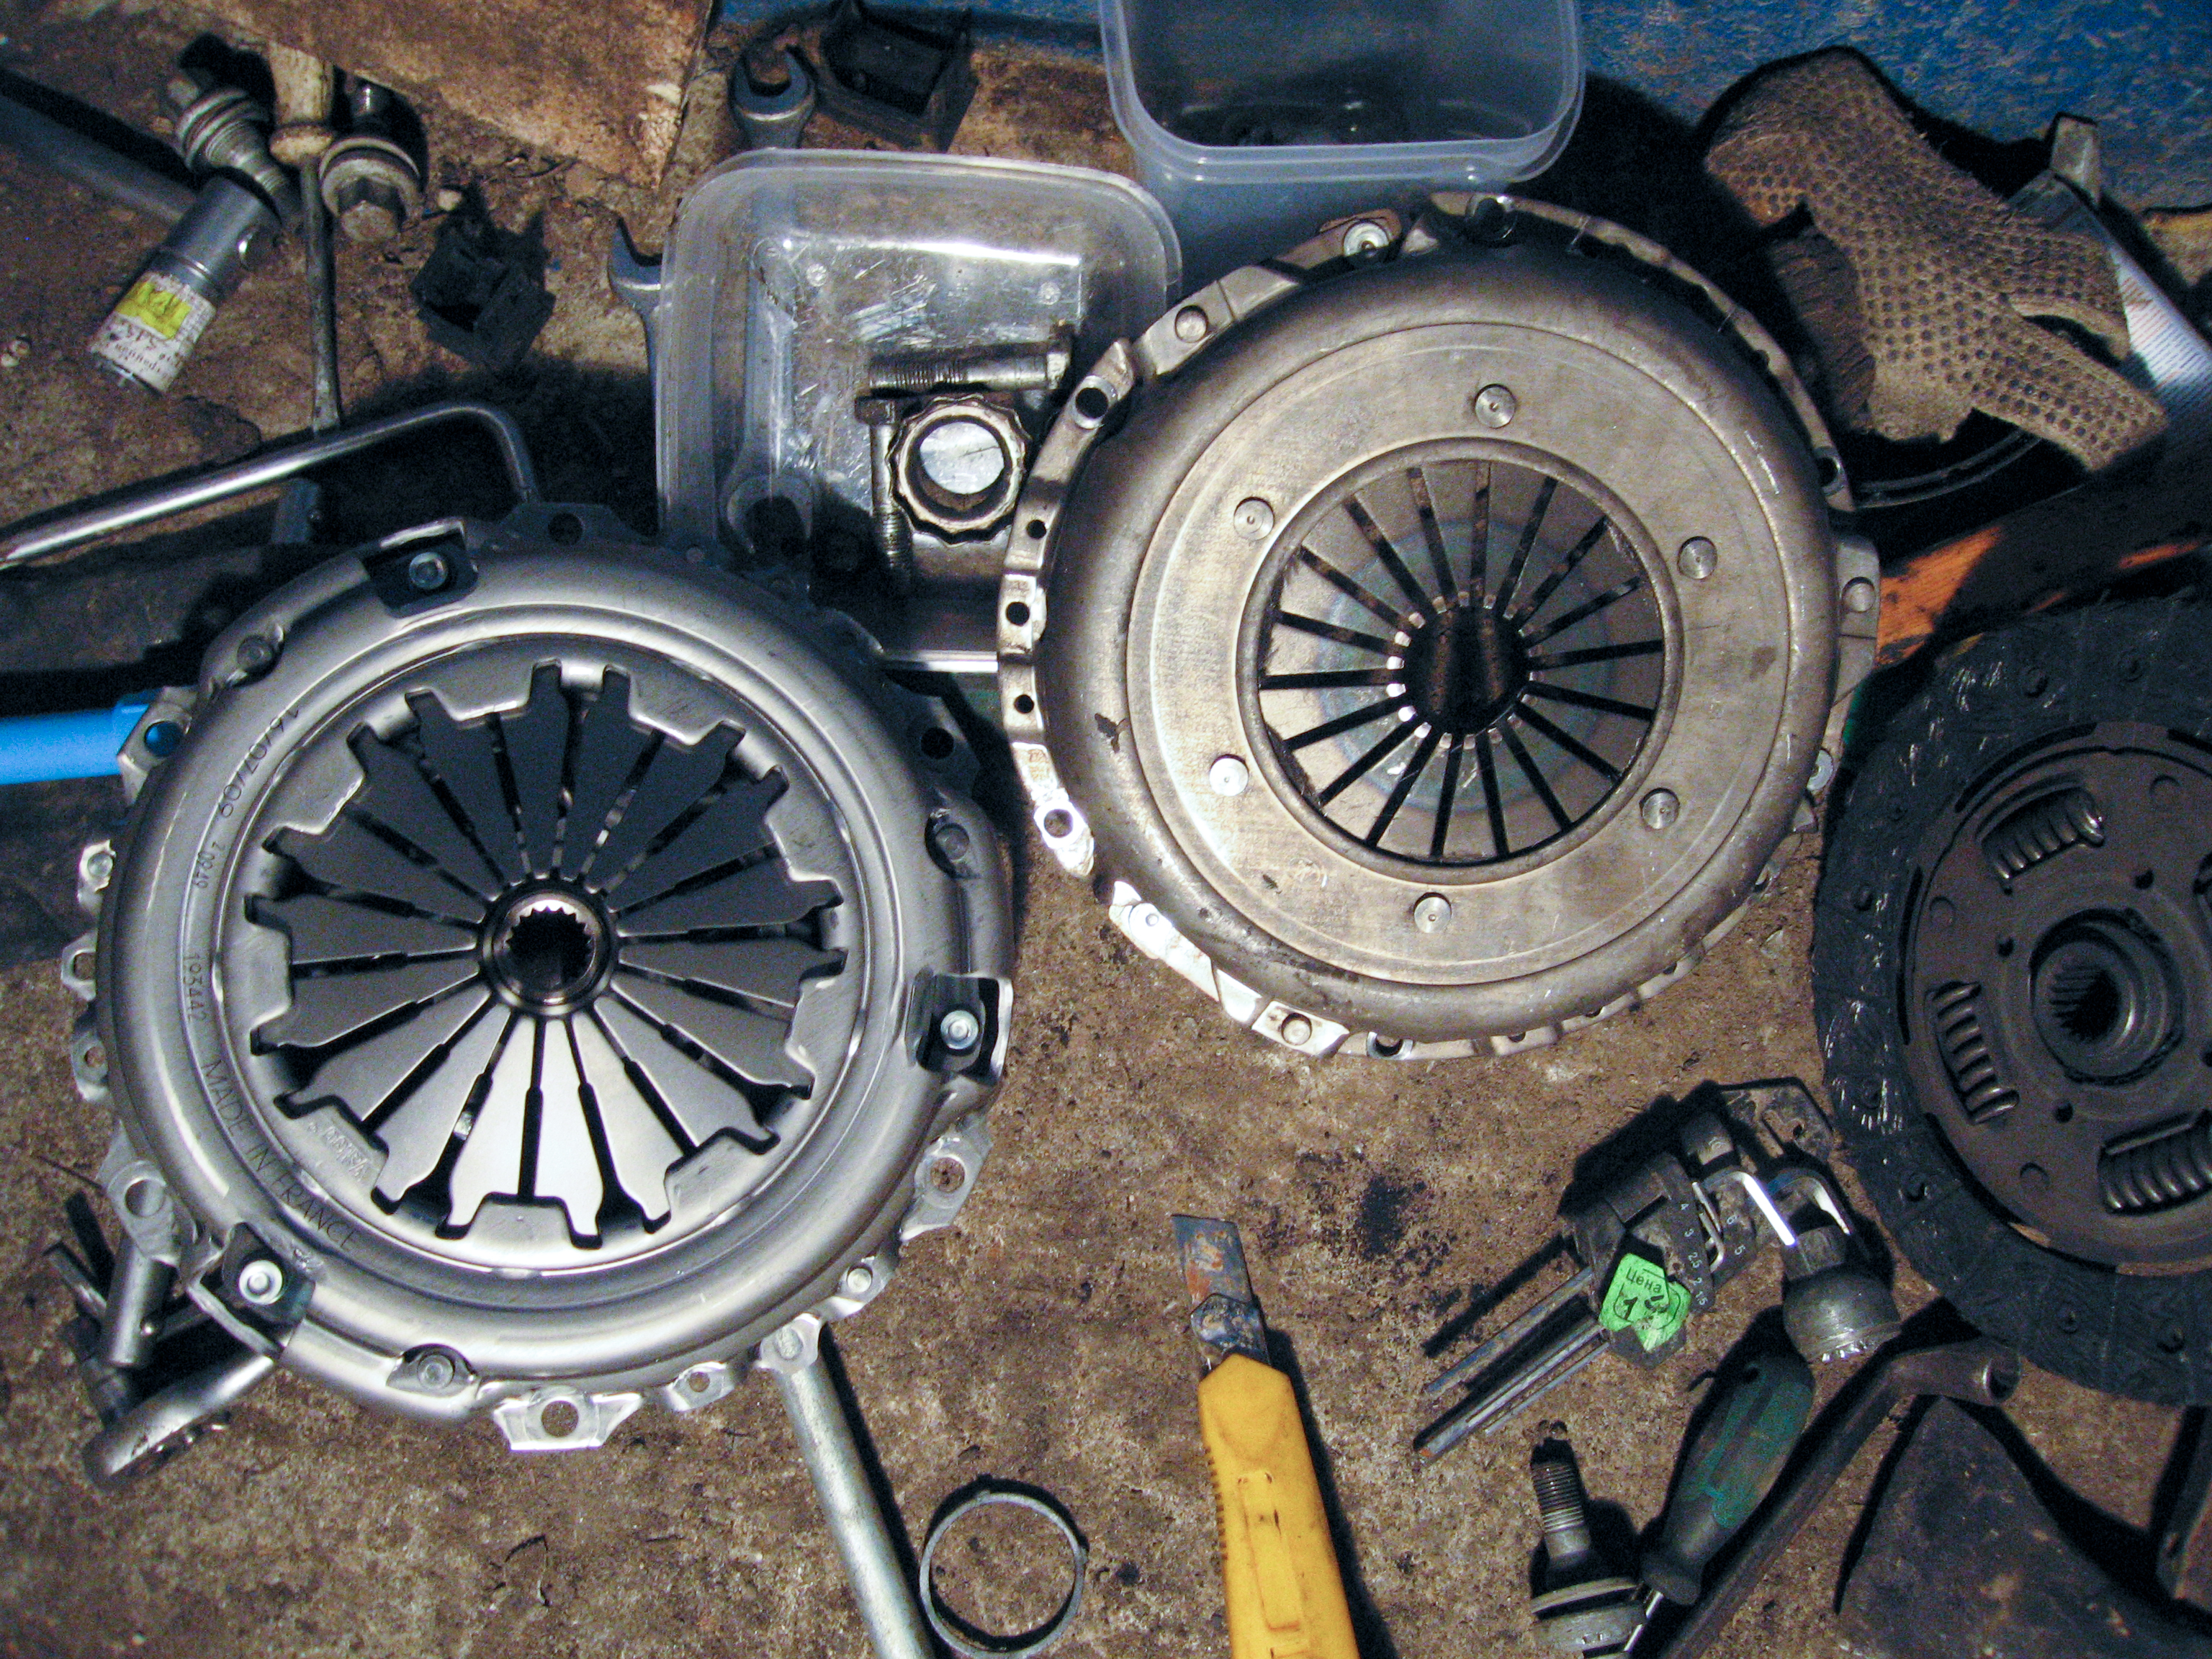 Clutch inspection, repair and replacement Cost | AutoGuru